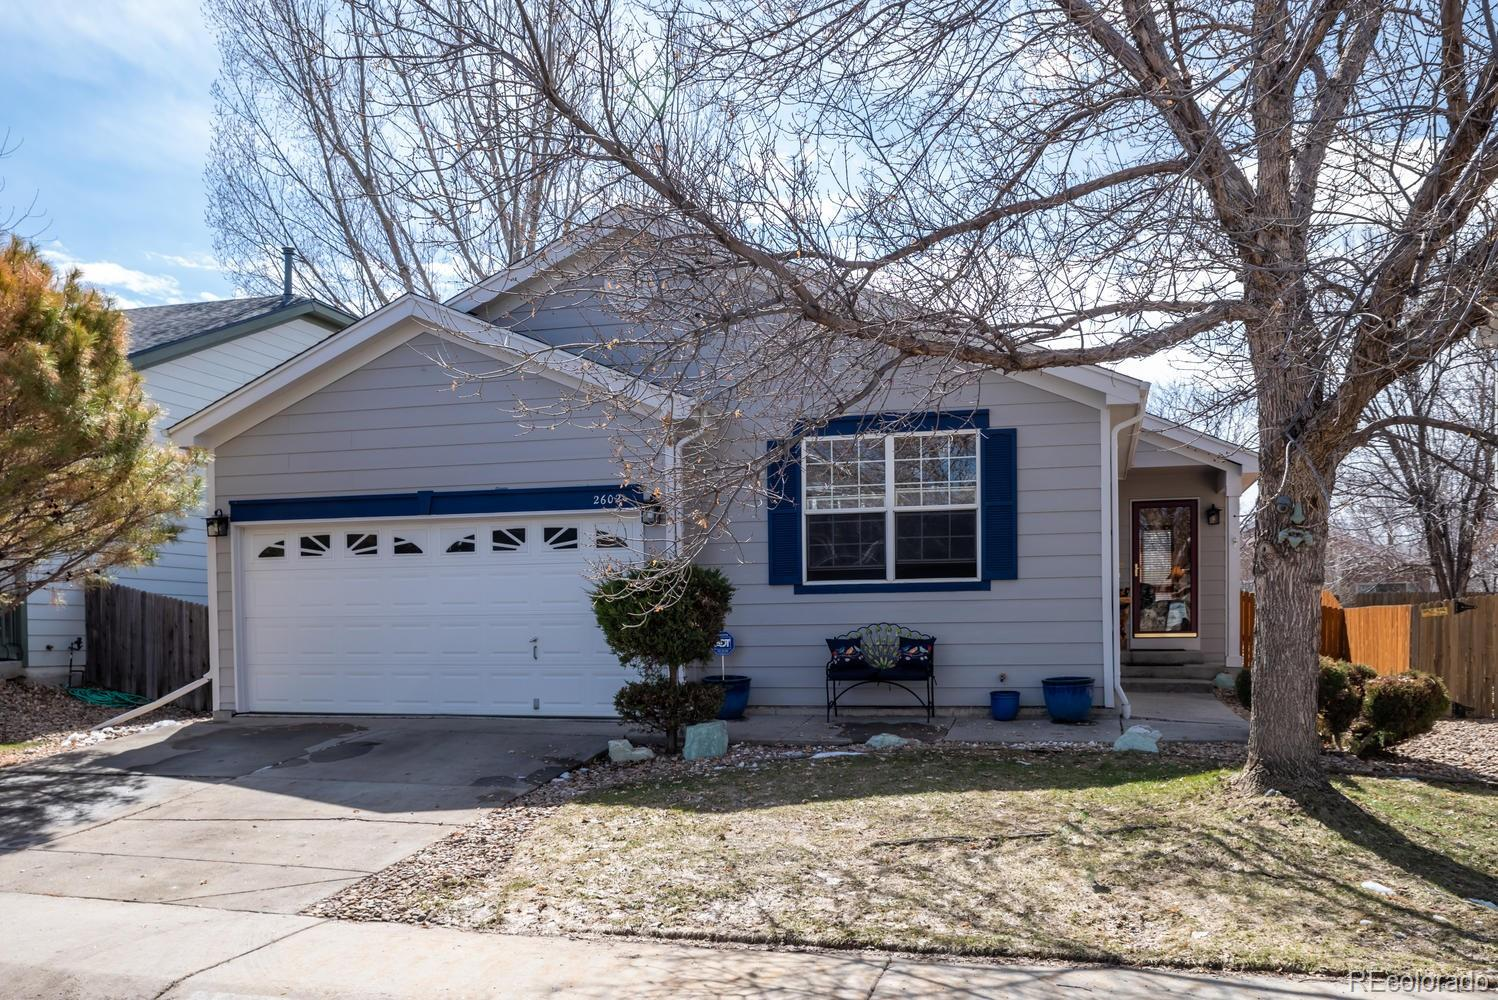 2602 Betts Circle, Erie, CO 80516 - Erie, CO real estate listing